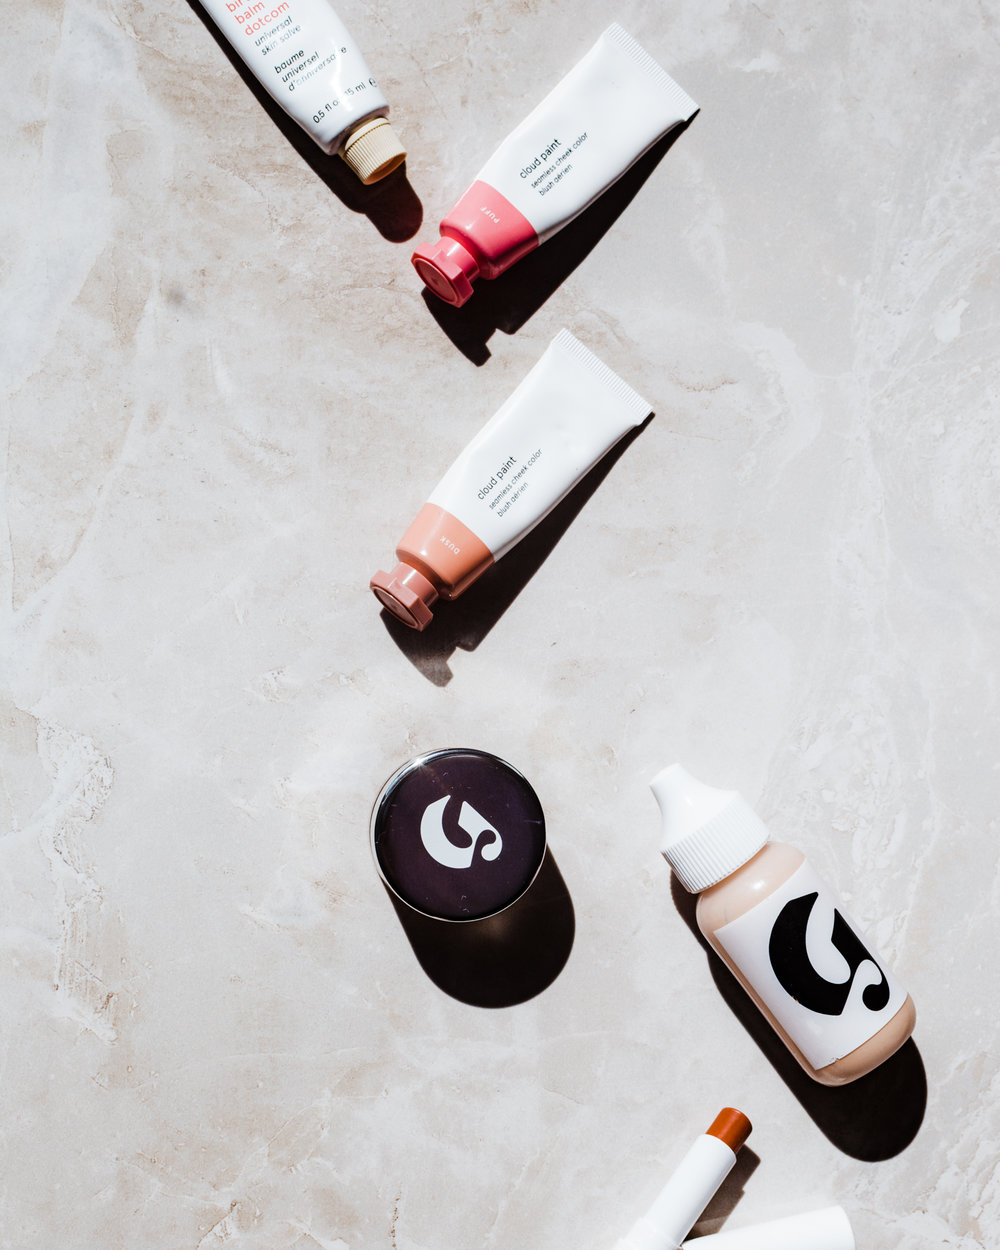 glossier cloud paint haloscope balm dot com  stretch concealer skin perfecting tint generation g zip- styleapotheca